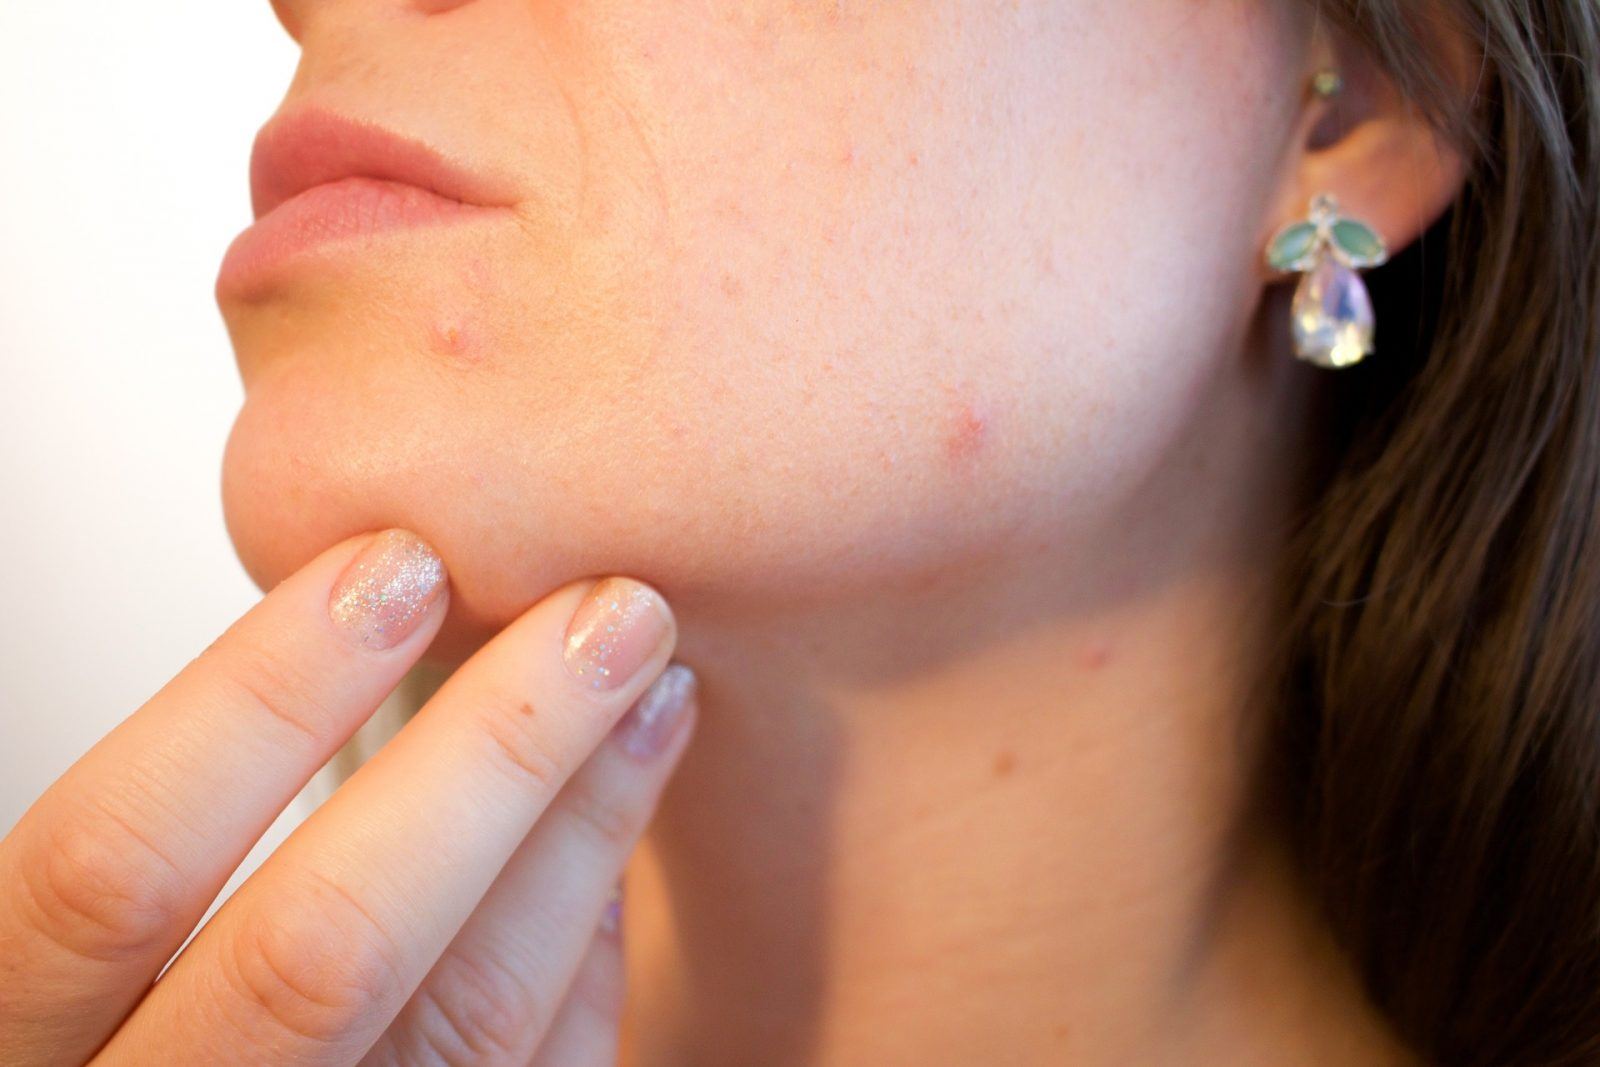 Acne and Acne Scarring Treatments 1